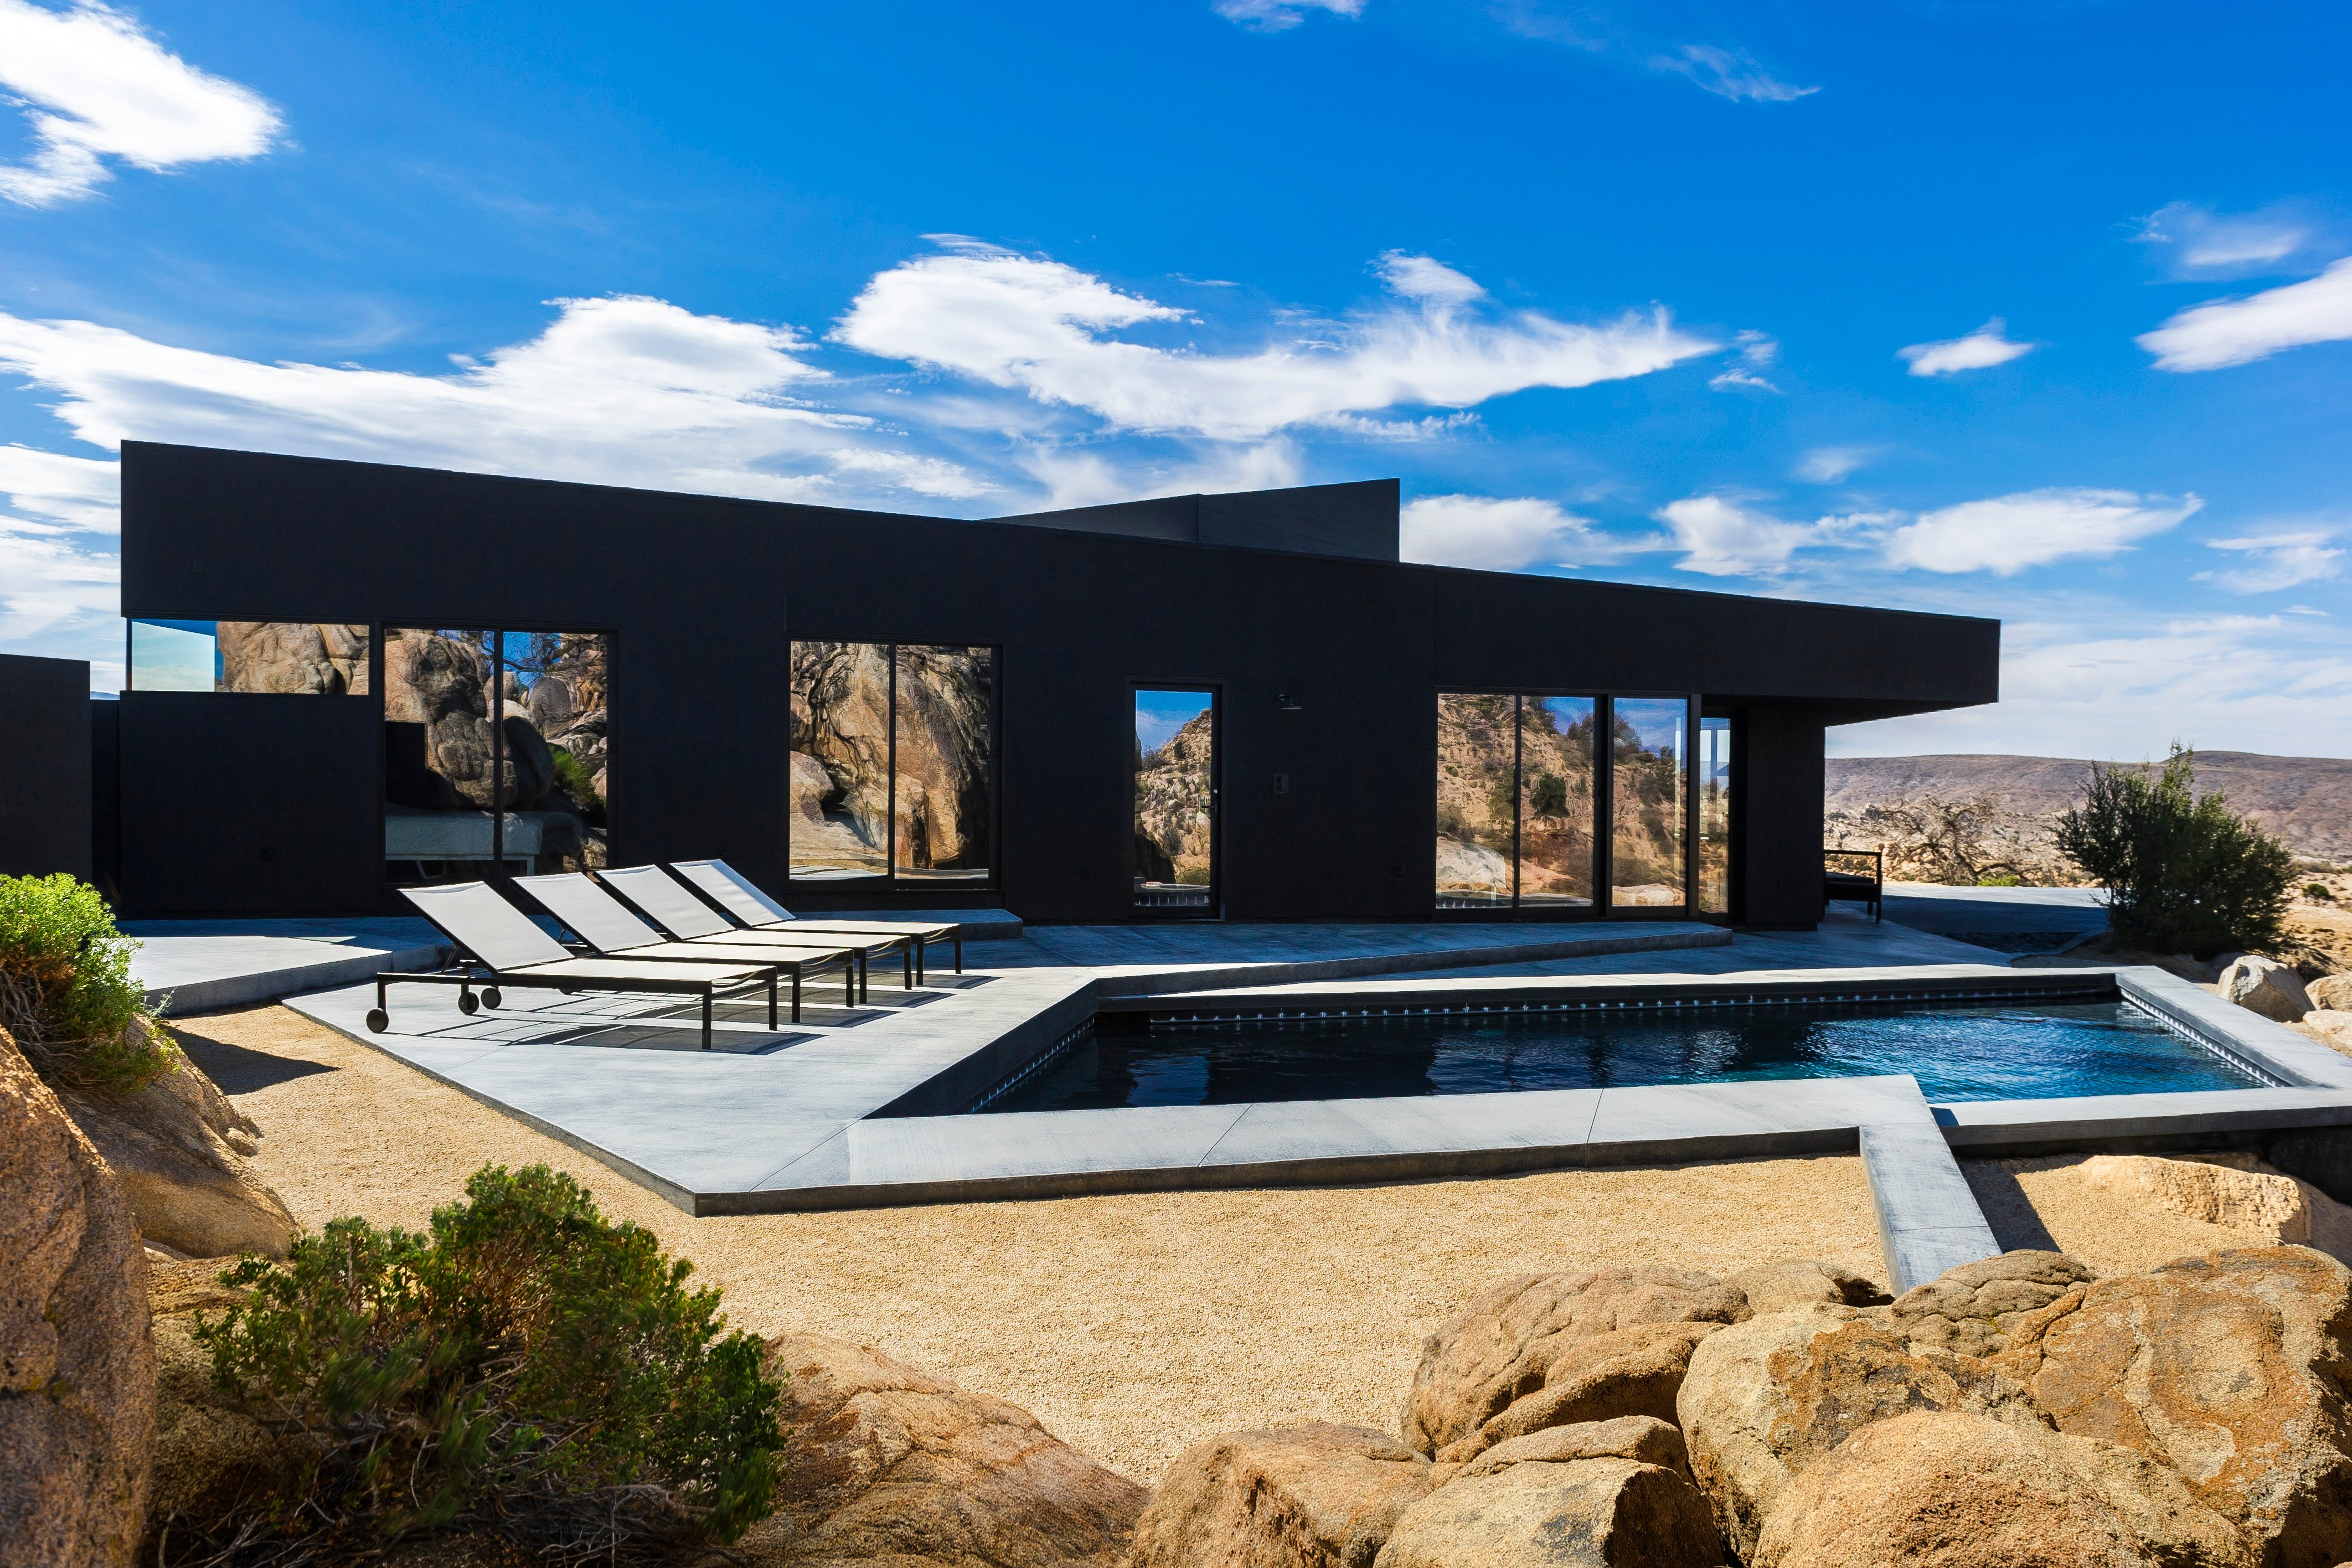 Top 10 Black Homes | iGNANT.com Efficient Desert House Design on fun house designs, good house designs, lightweight house designs, compact house designs, independent house designs, happy house designs, economical house designs, strong house designs, open house designs, cheap house designs, best passive solar home designs, efficient closet design, small house designs, rapid house designs, ranch house designs, zero energy house designs, spacious house designs, functional house designs, complex house designs, high efficiency home designs,